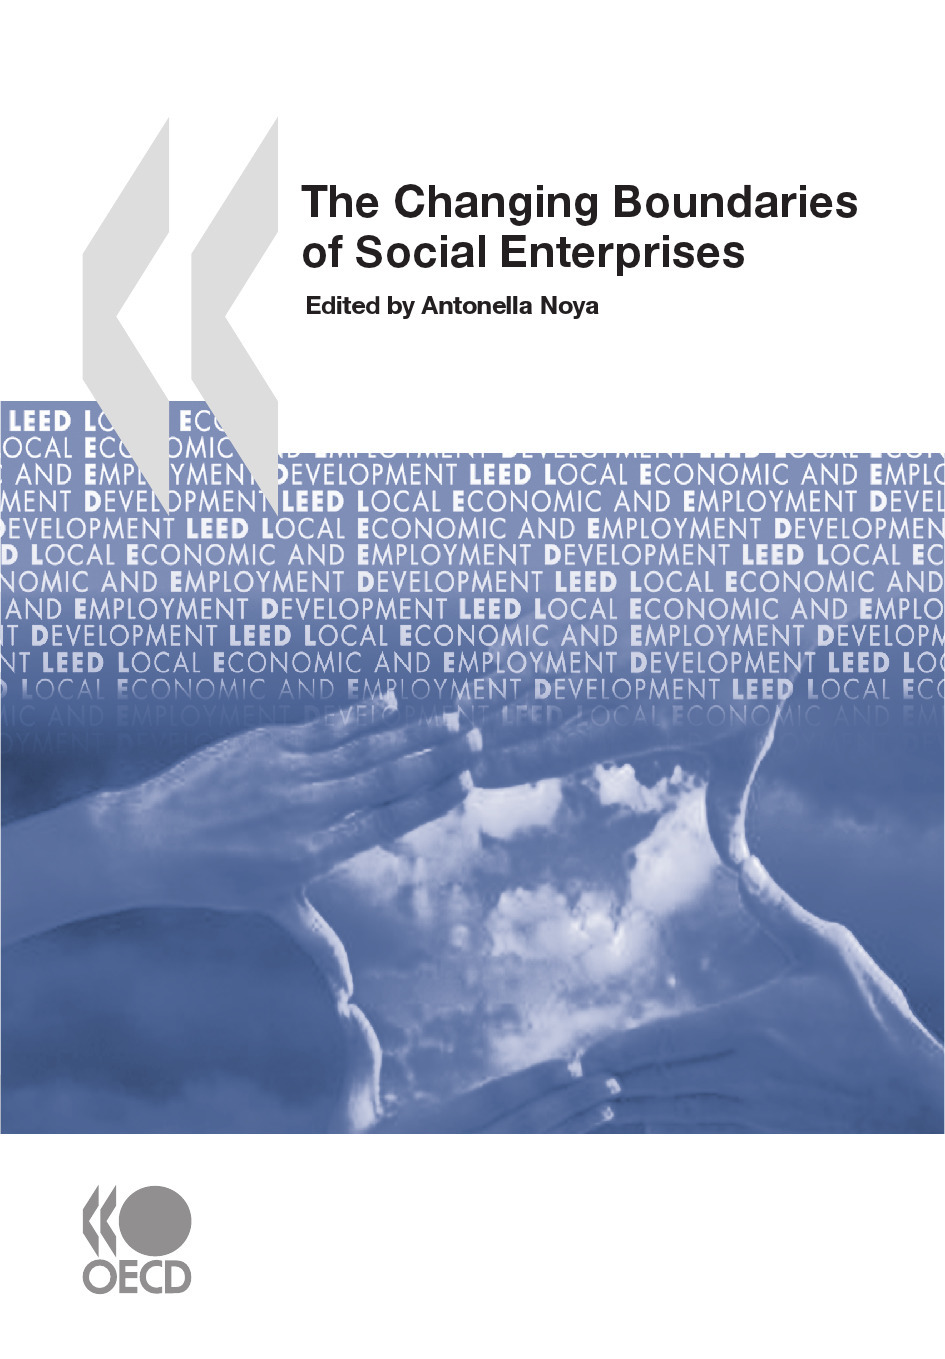 Collective The Changing Boundaries of Social Enterprises